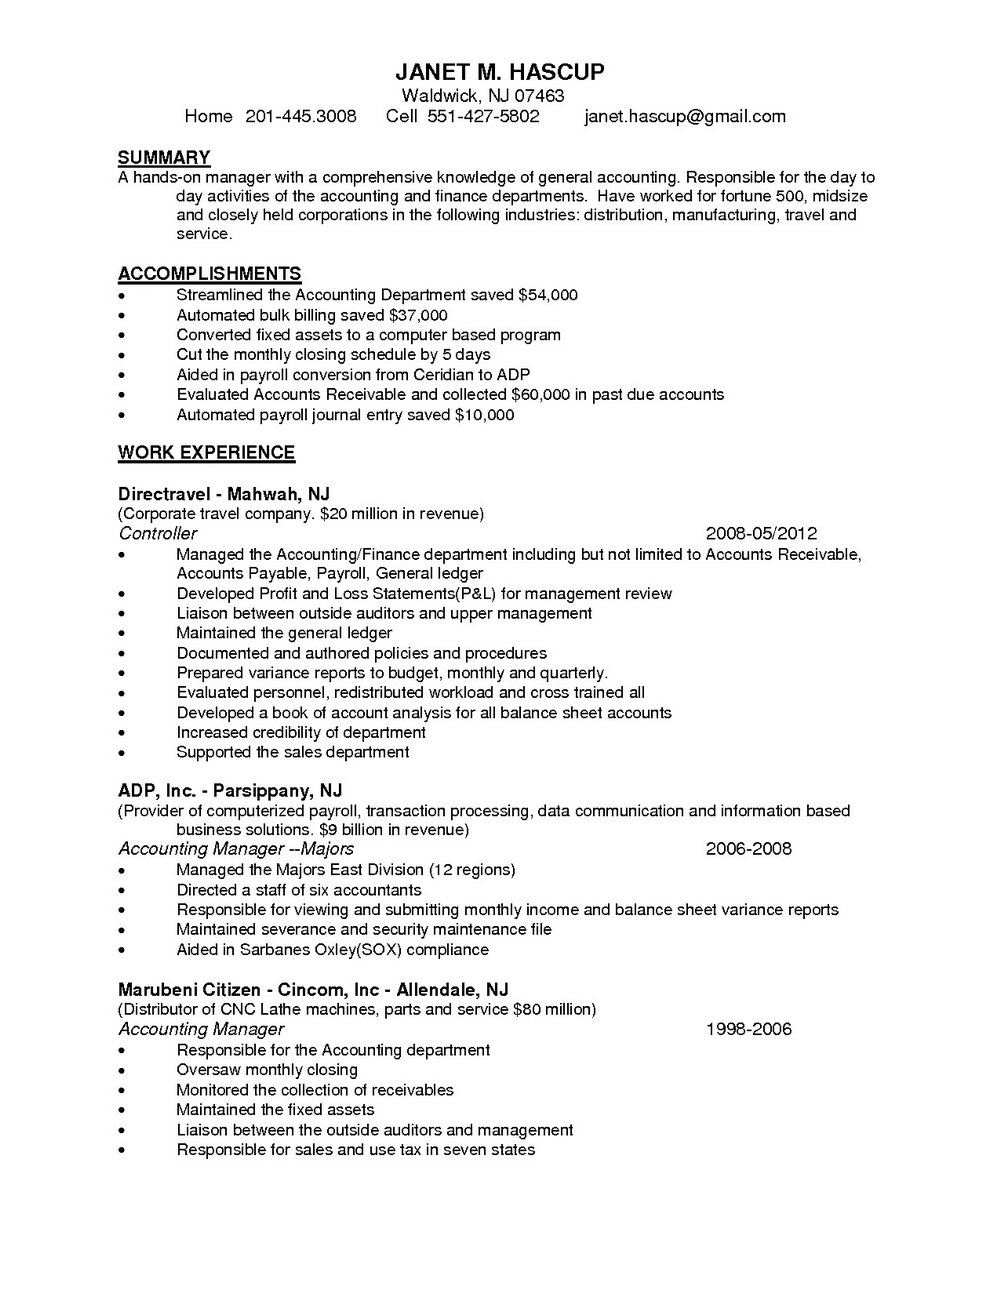 Resume Samples For Accounts Receivable Clerk